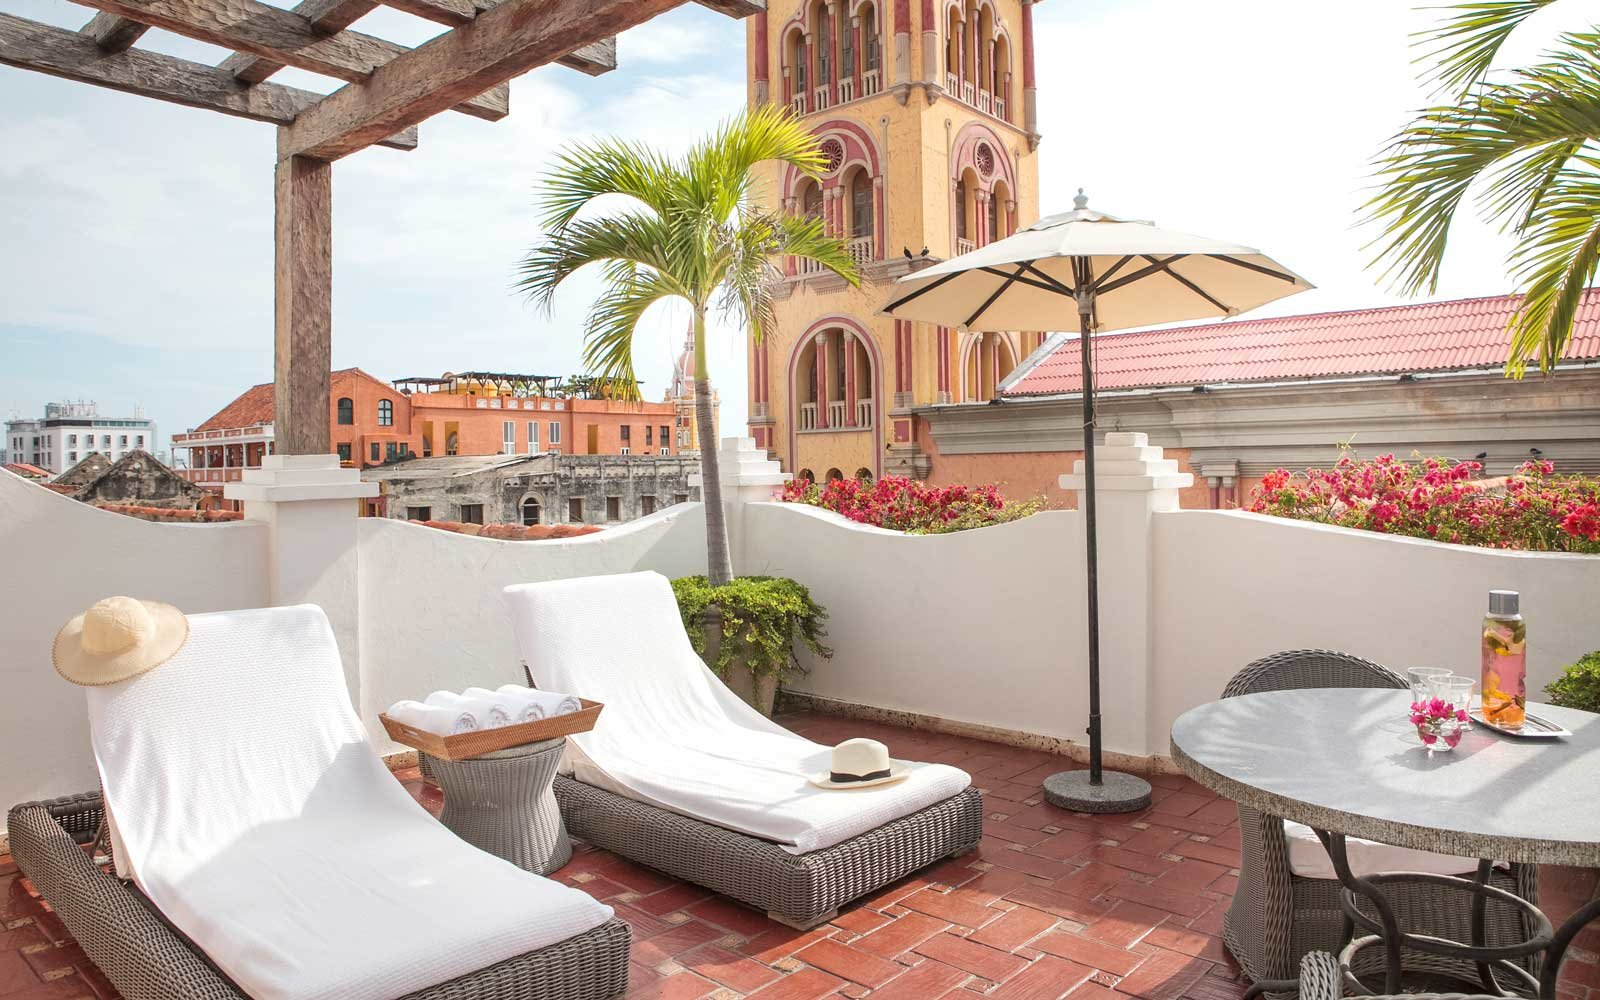 View from the rooftop of the Hotel Casa San Agustin